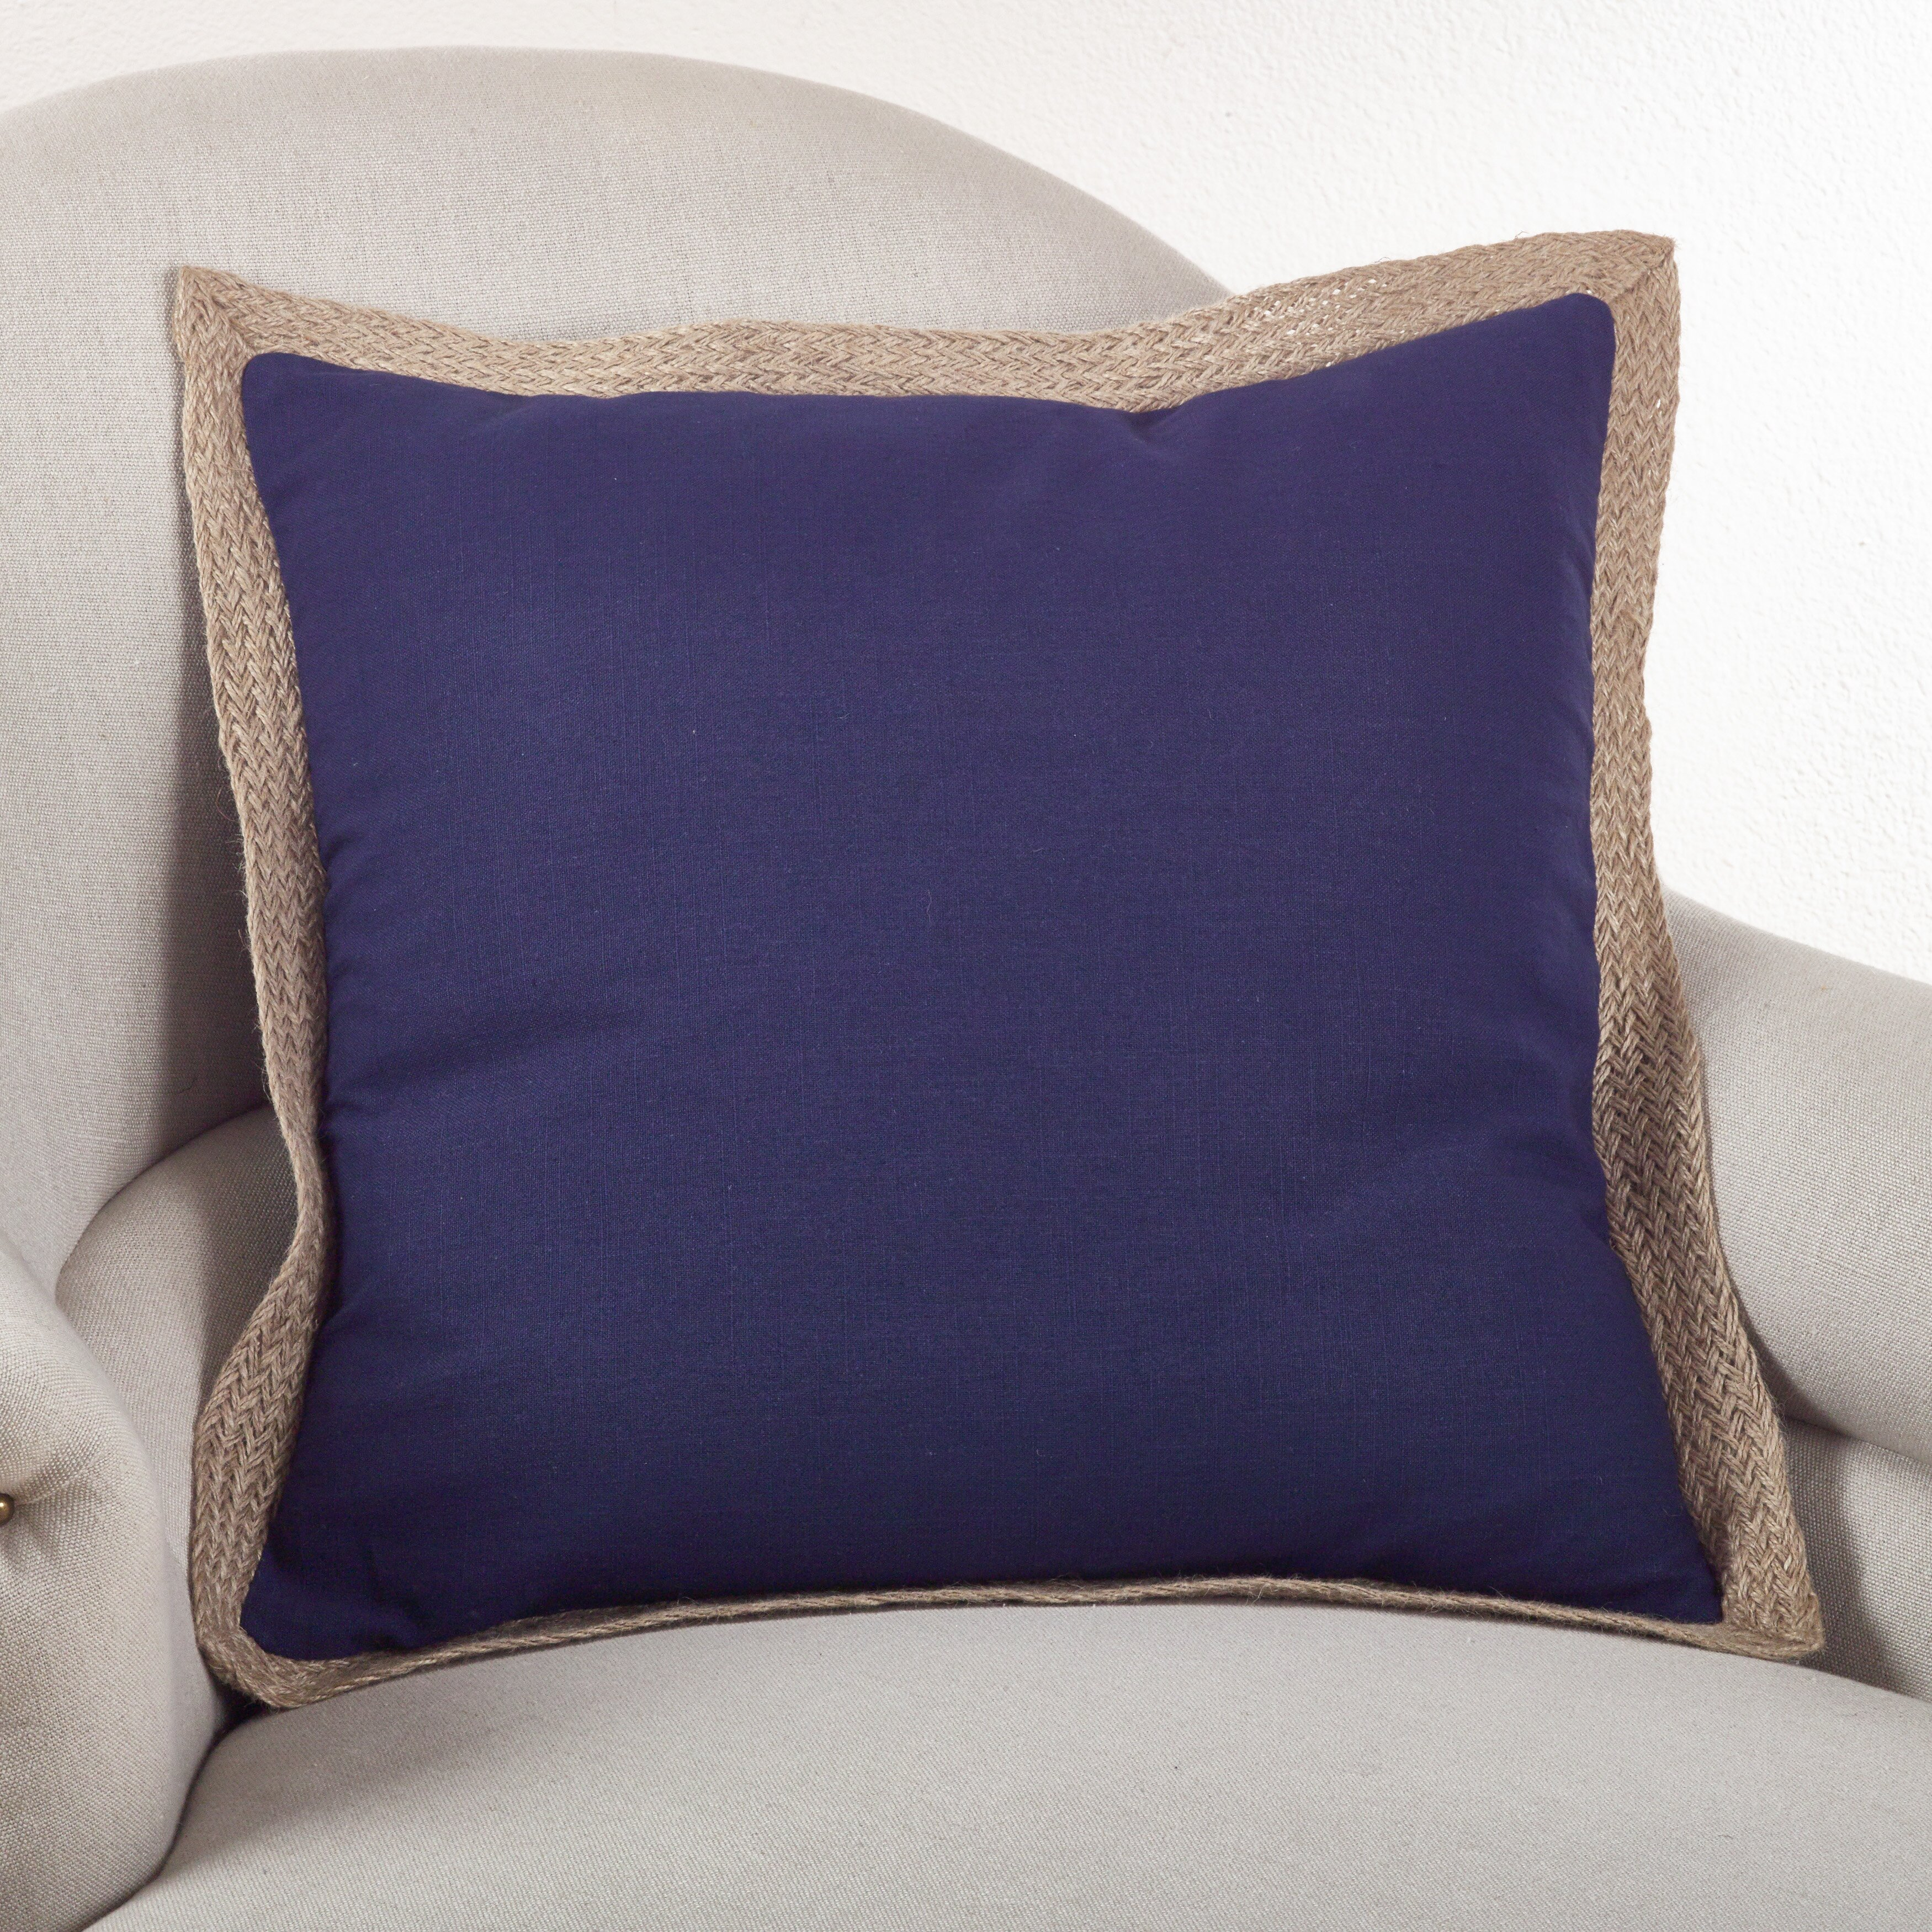 Throw Pillow Trim : Classic Jute Trim Cotton Throw Pillow Wayfair